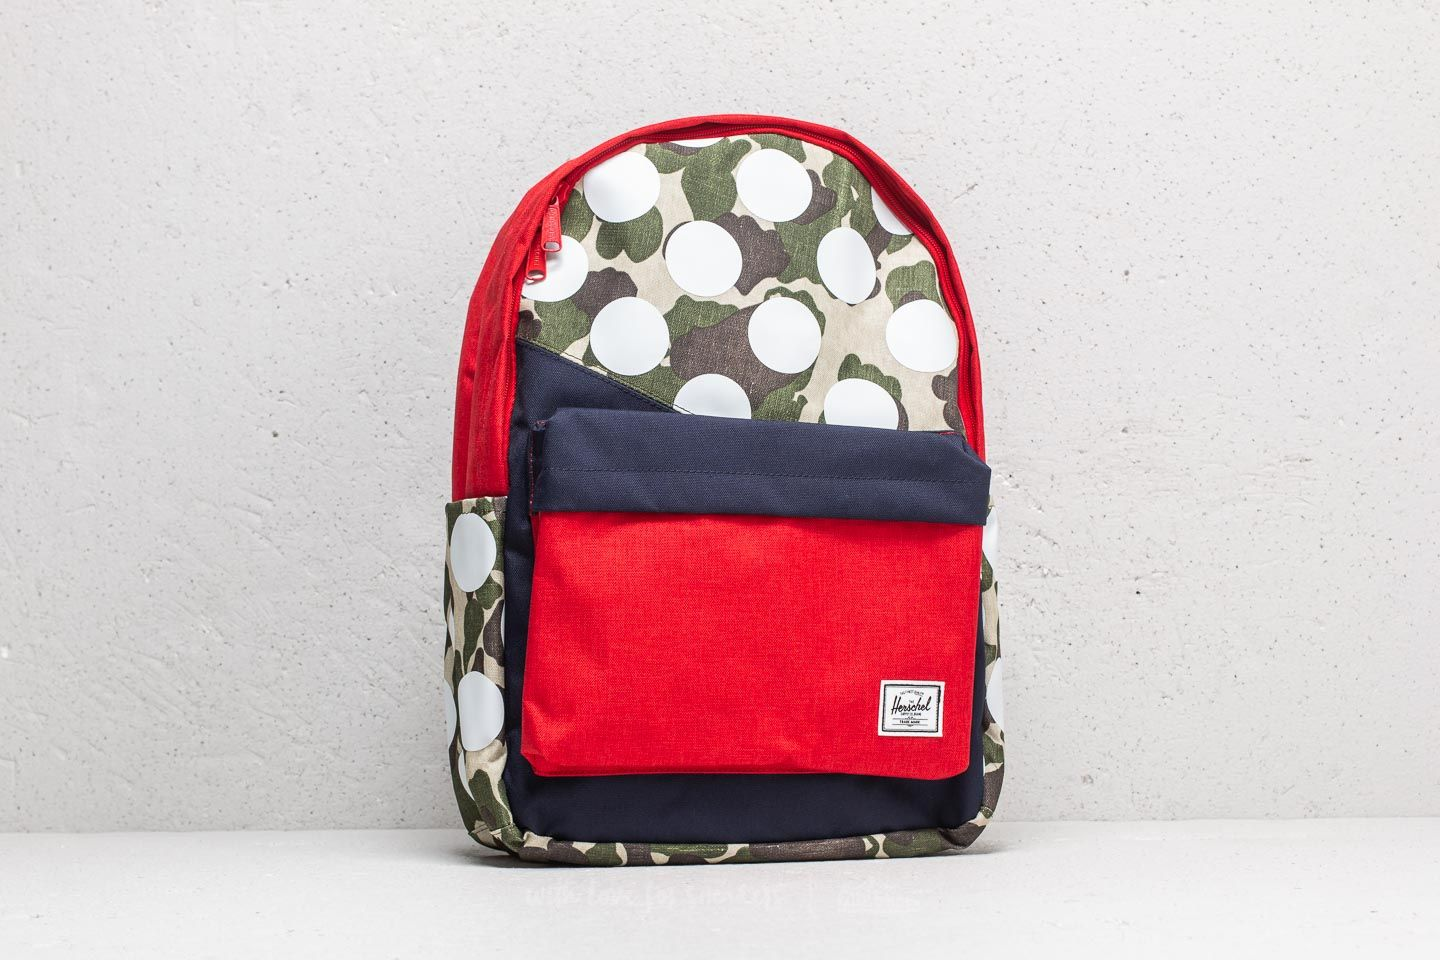 98fac348b7 Herschel Supply Co. Classic Backpack Frog Camo  Barbados Cherry ...